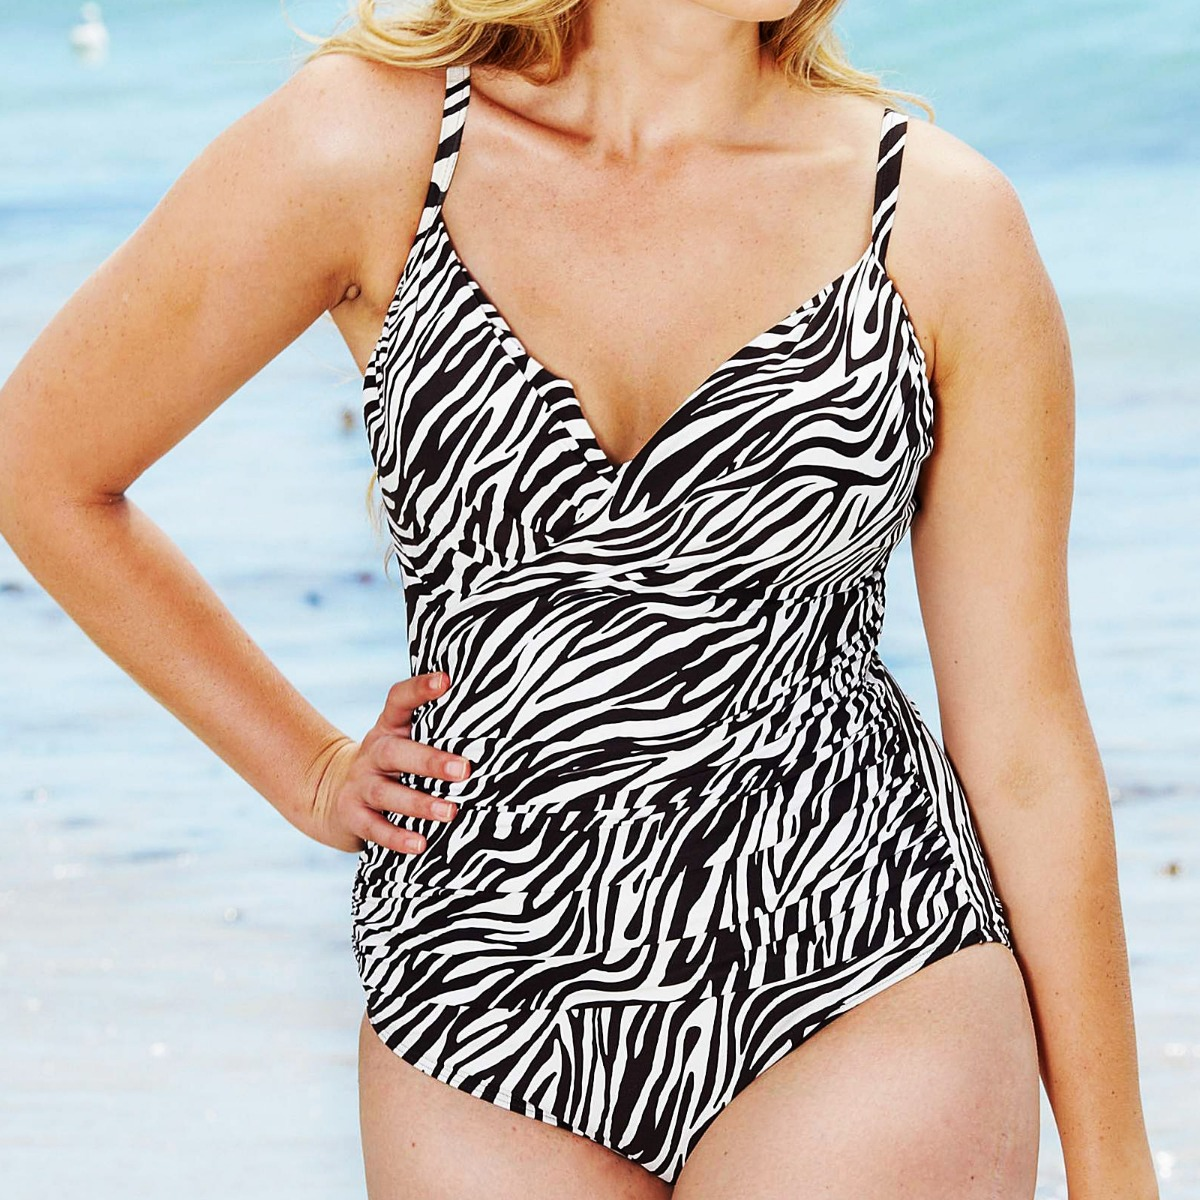 79b5bd1a53 ... Womens swimming costume one piece swimsuit with animal print available  in uk size 16